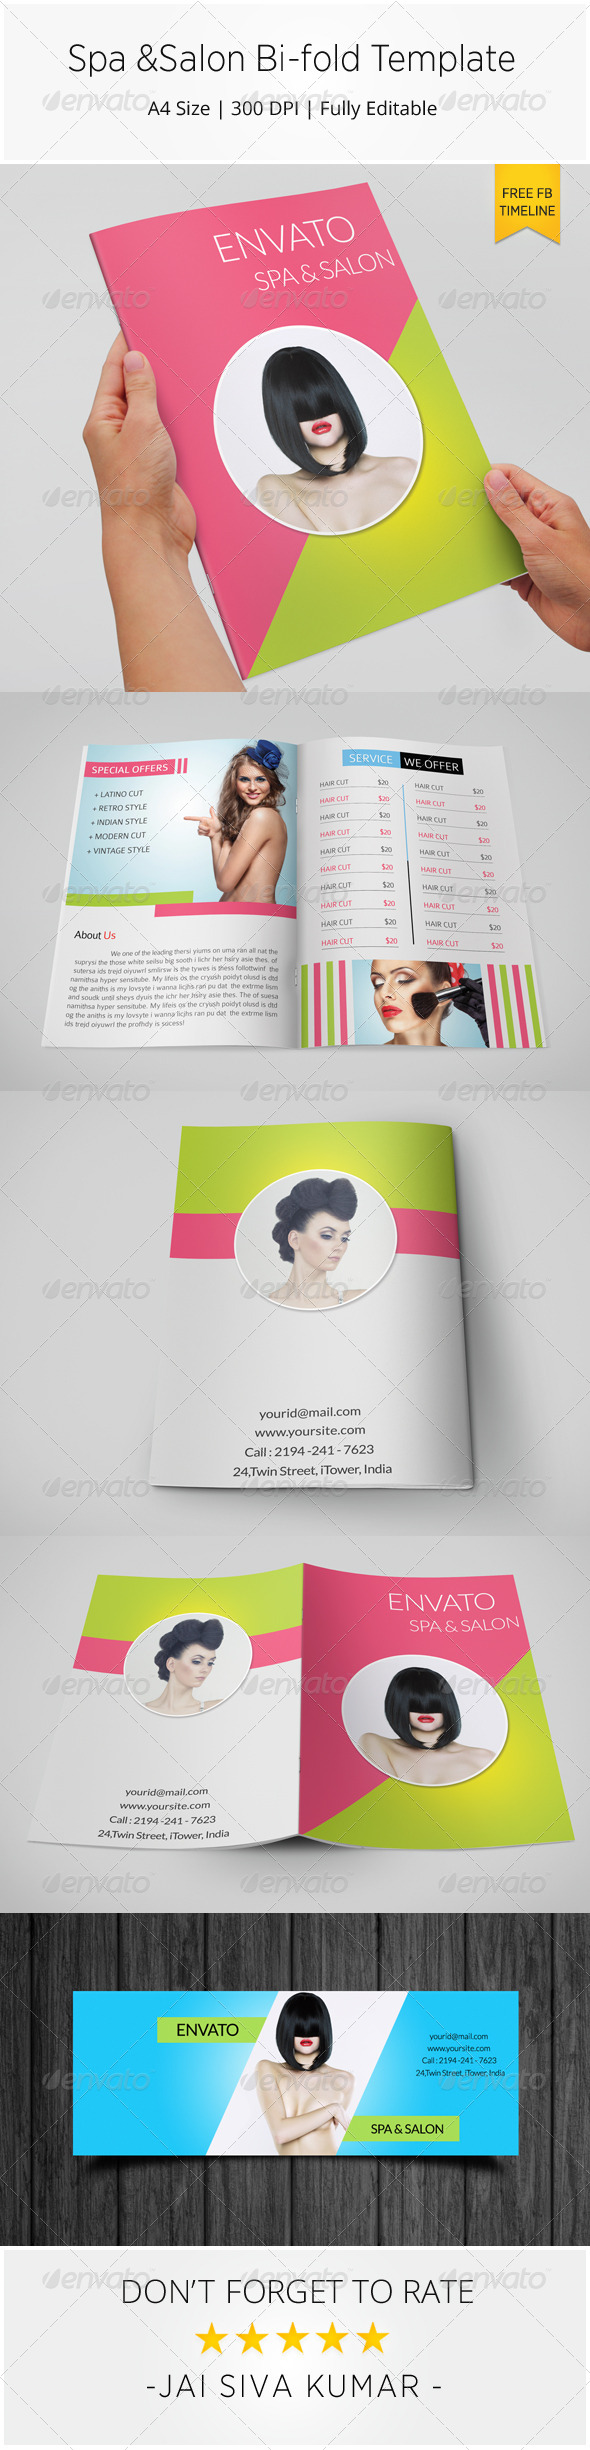 GraphicRiver Spa & Salon Bi-fold Brochure Template 7892252